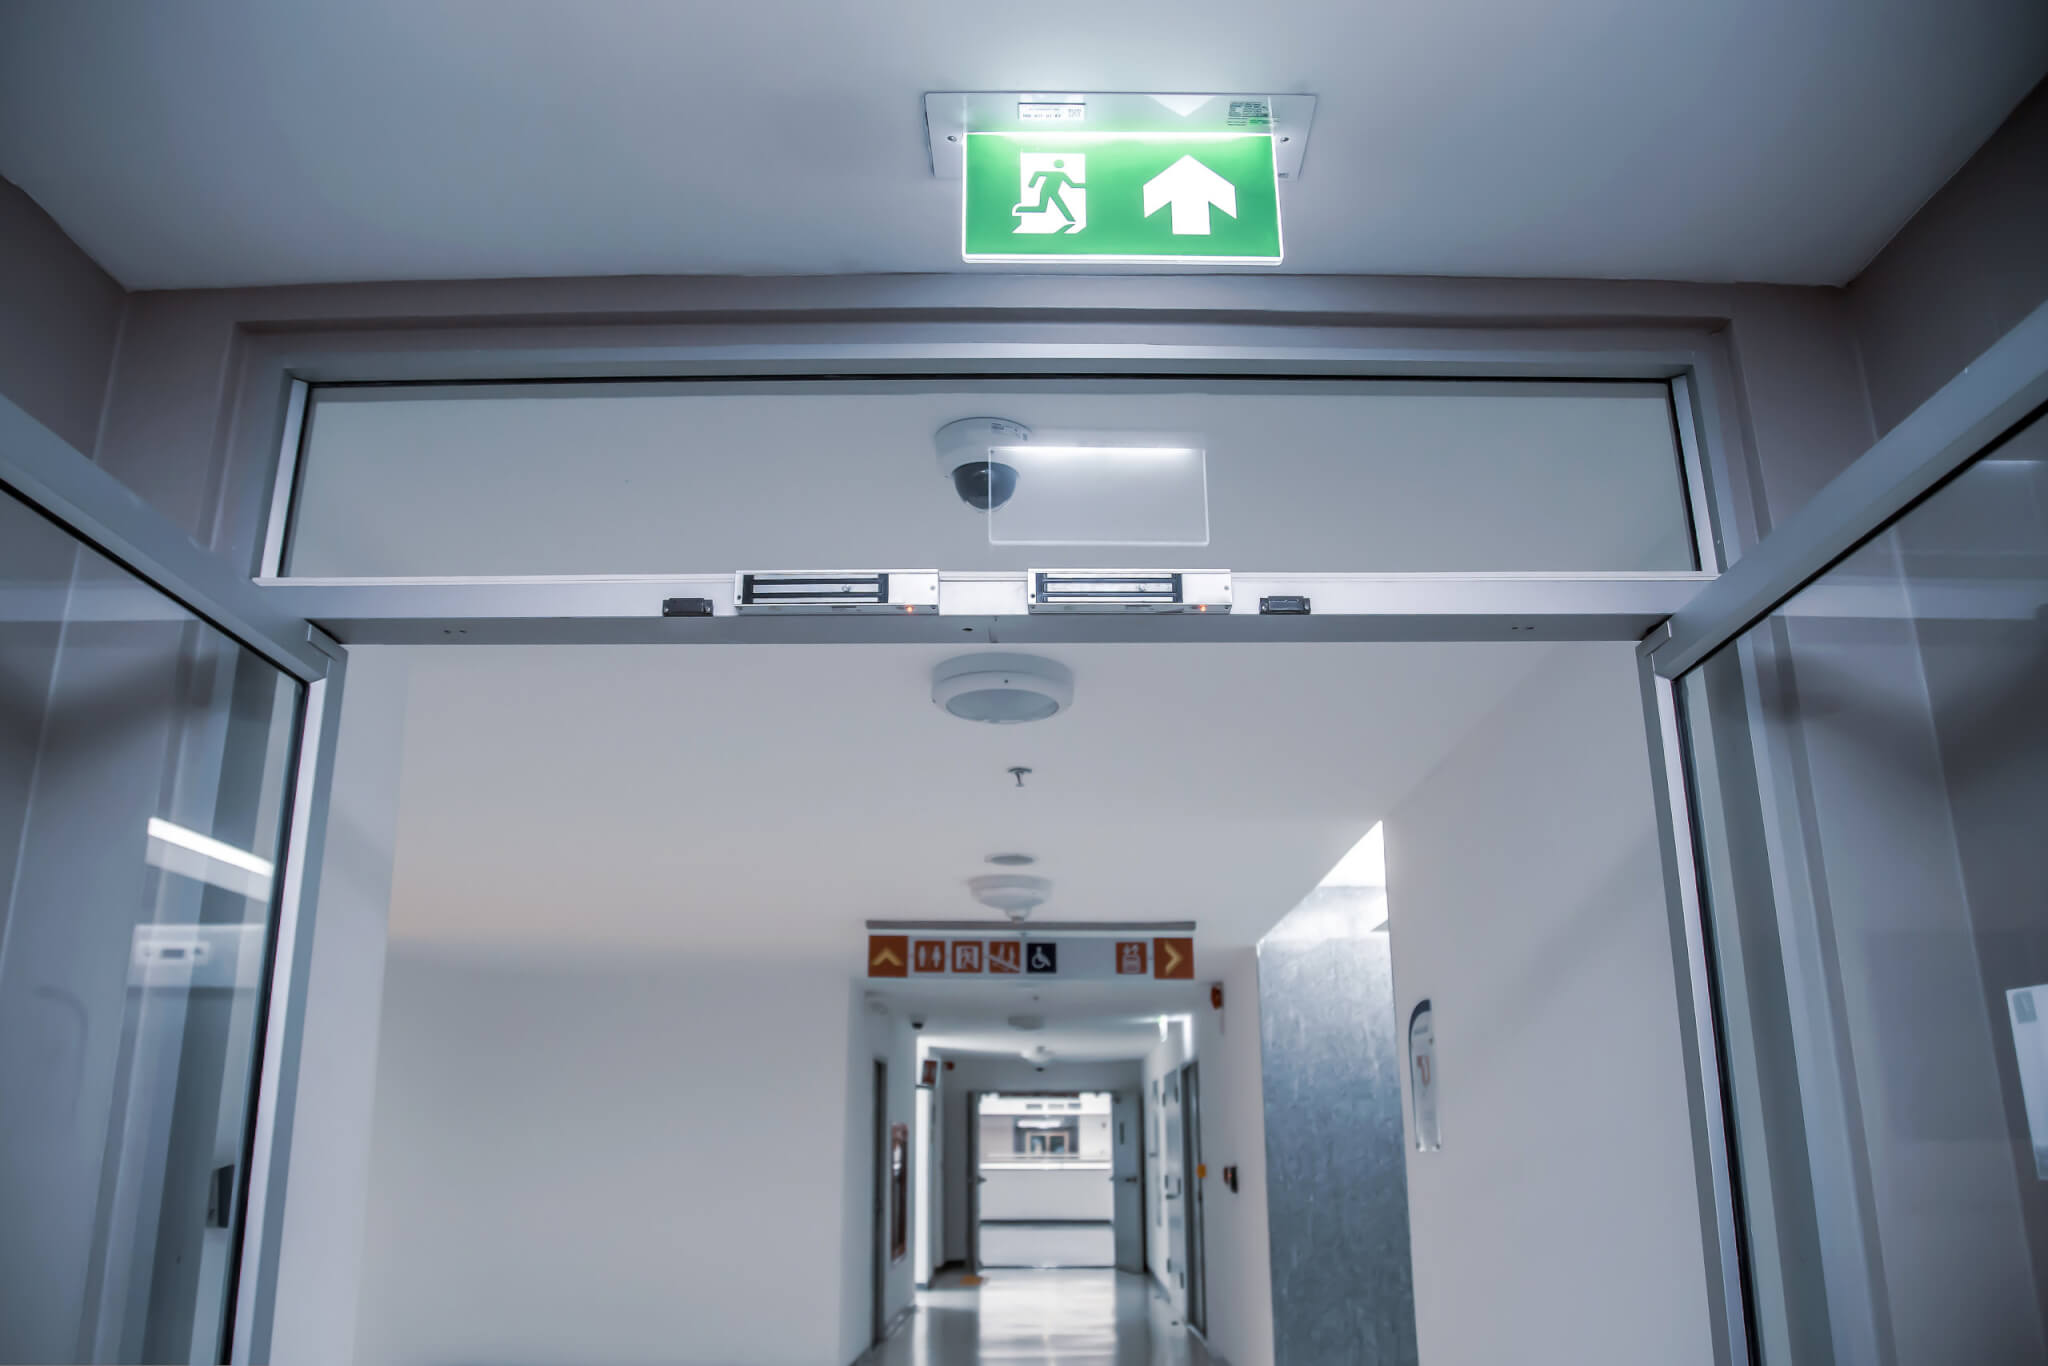 Emergency exit sign and exit gate or fire exits in the building Ideas for evacuation drills in the event of a fire